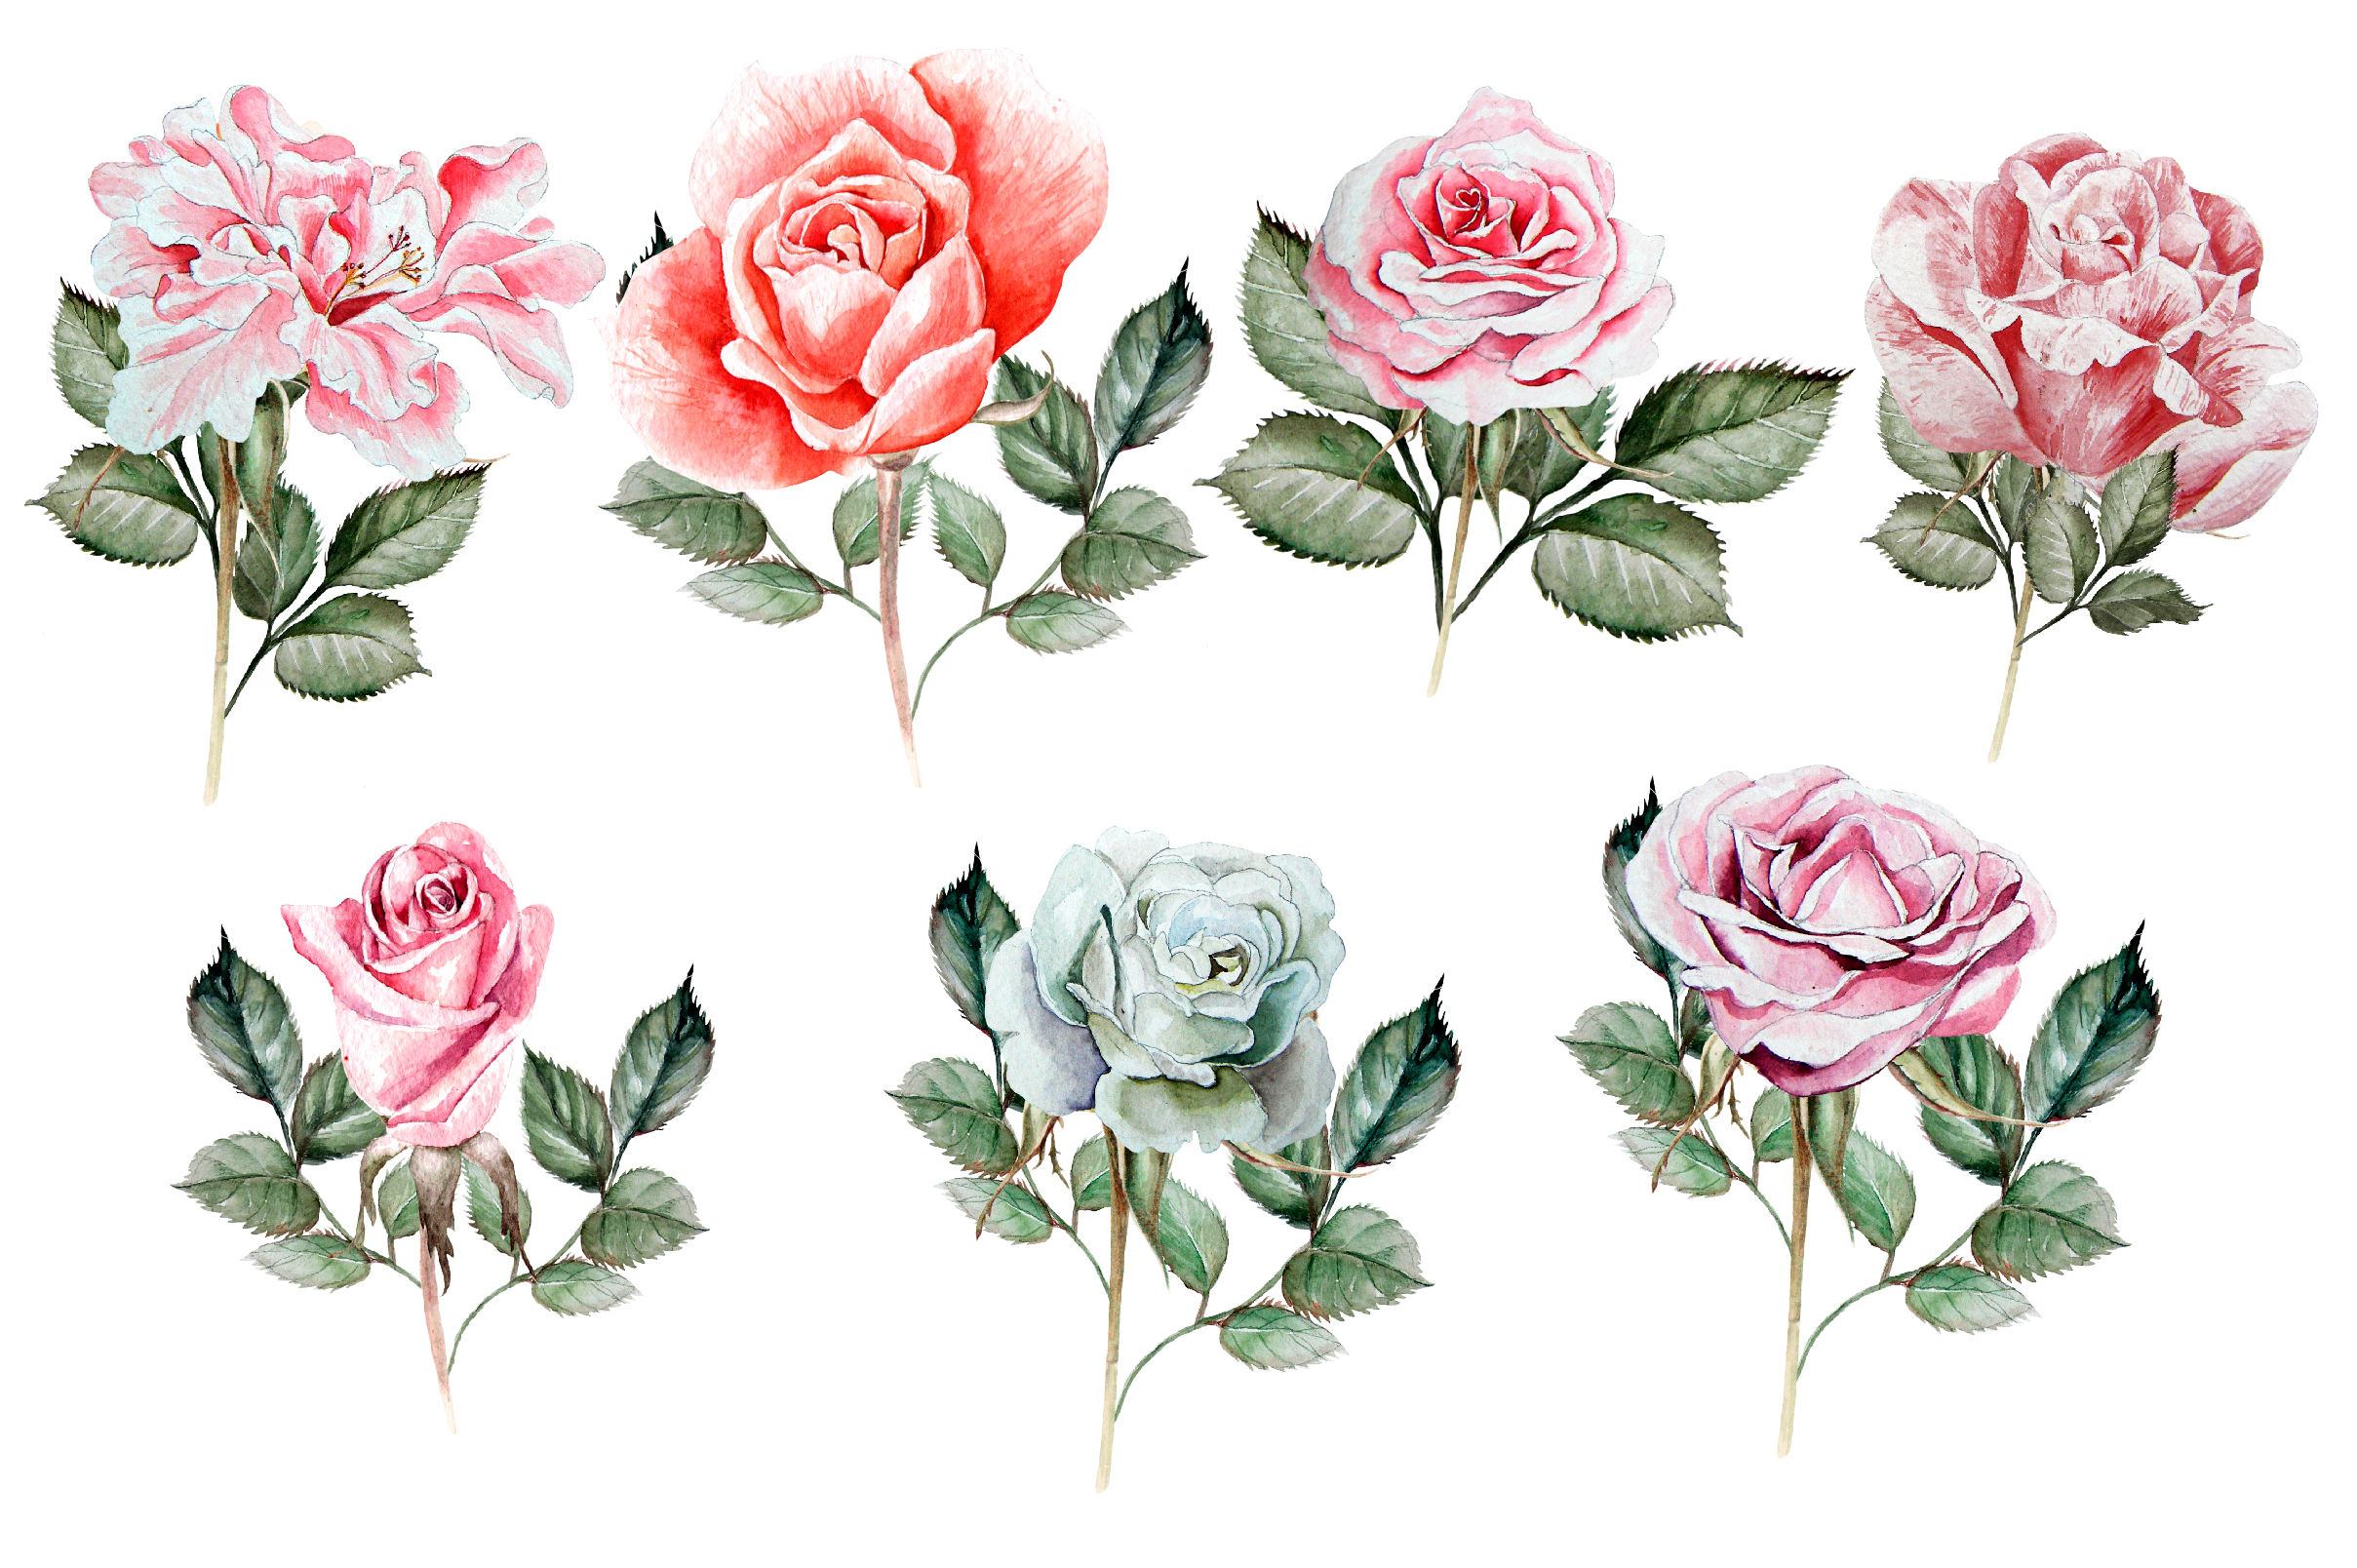 Hand drawn watercolor roses 2 example image 4